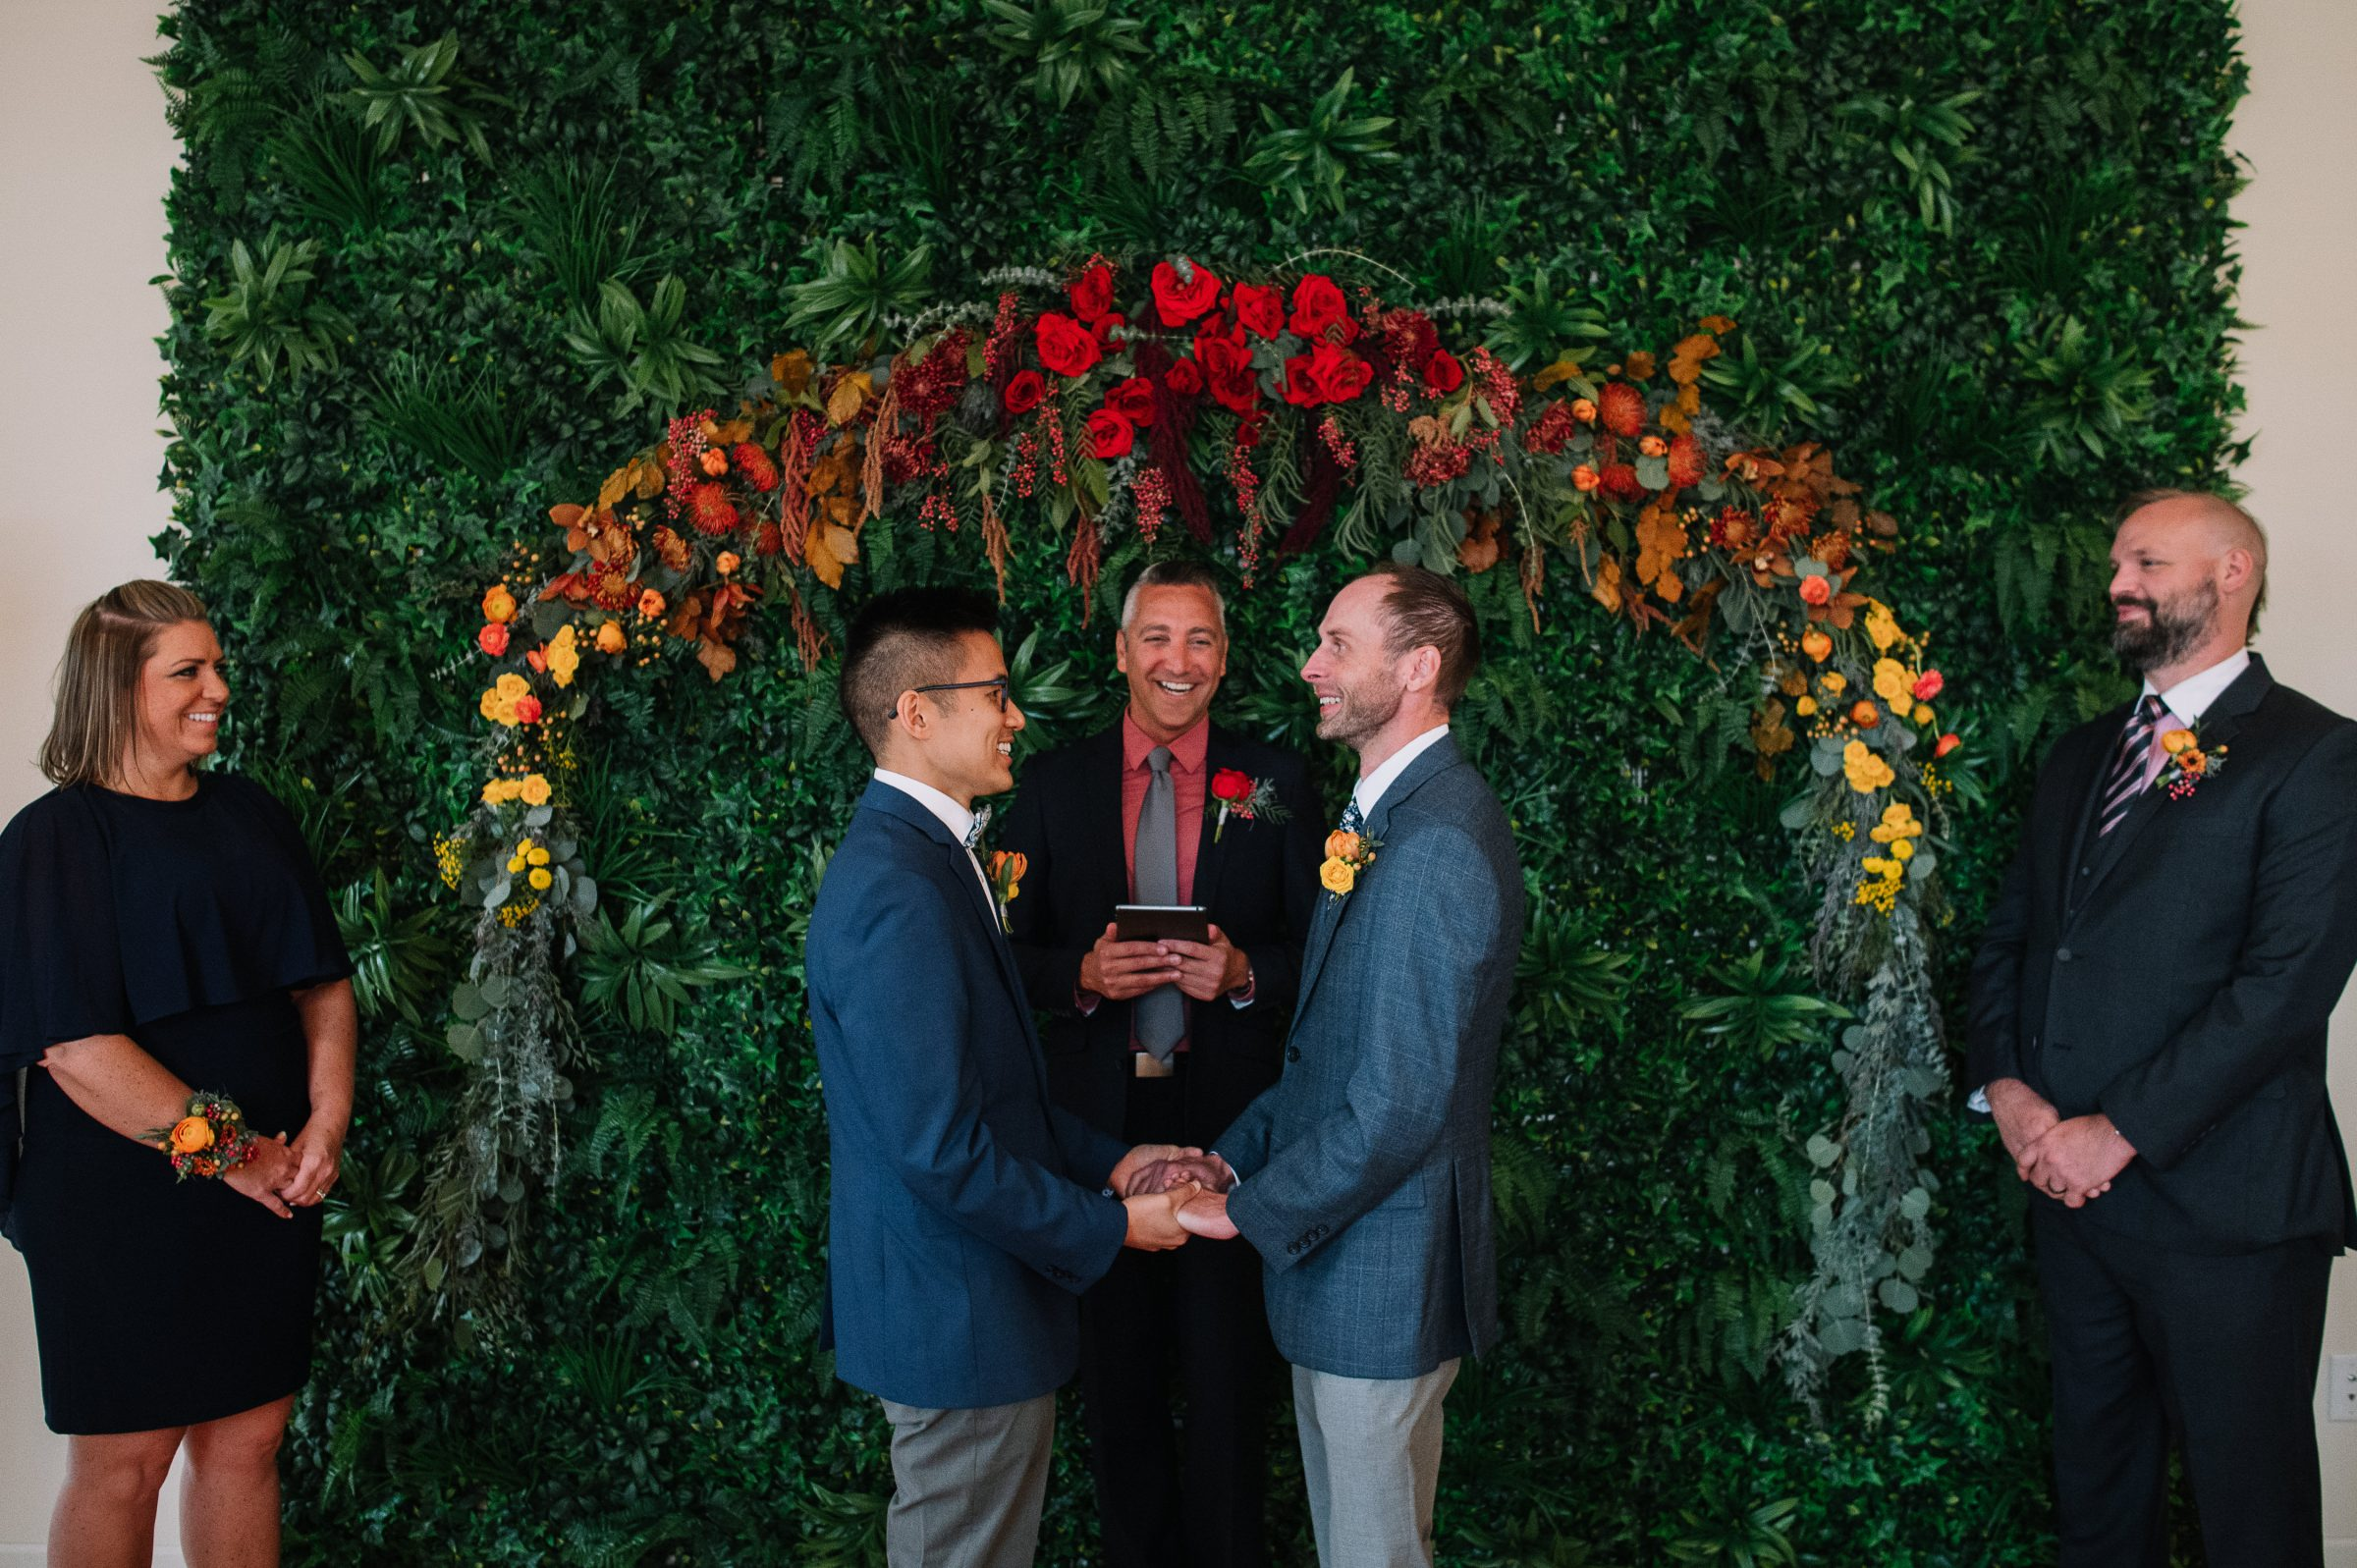 Two men marry in micro wedding at Minneapolis venue